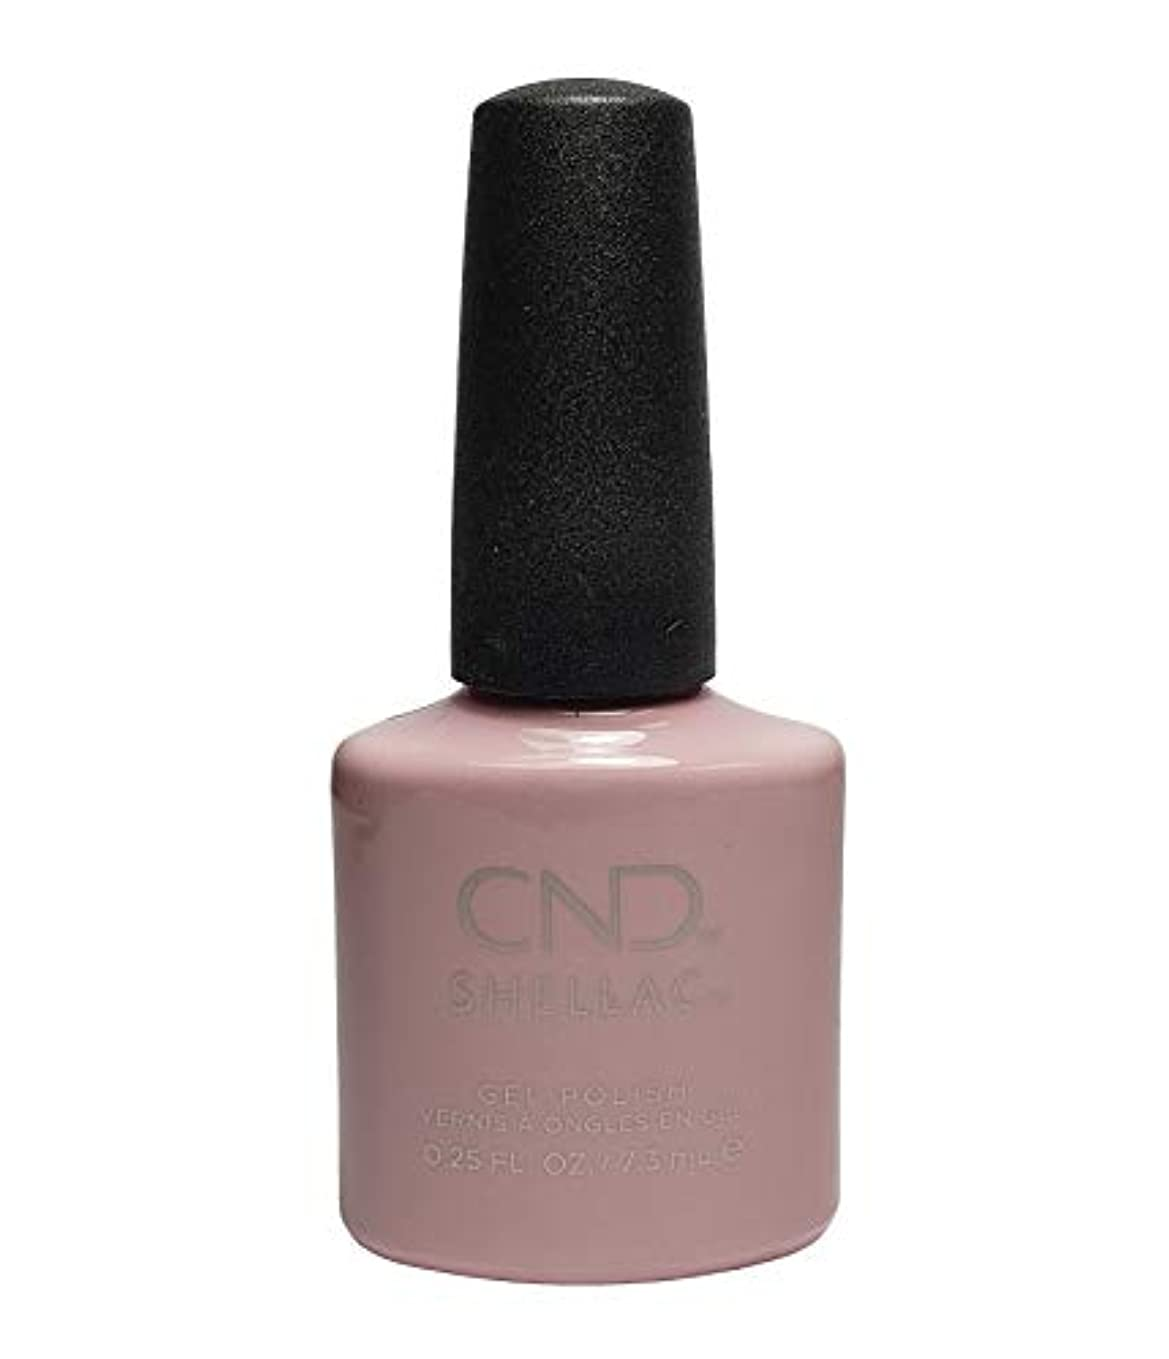 ボトルネックファウルに付けるCND Shellac - The Nude Collection 2017 - Unlocked - 7.3 mL / 0.25 oz